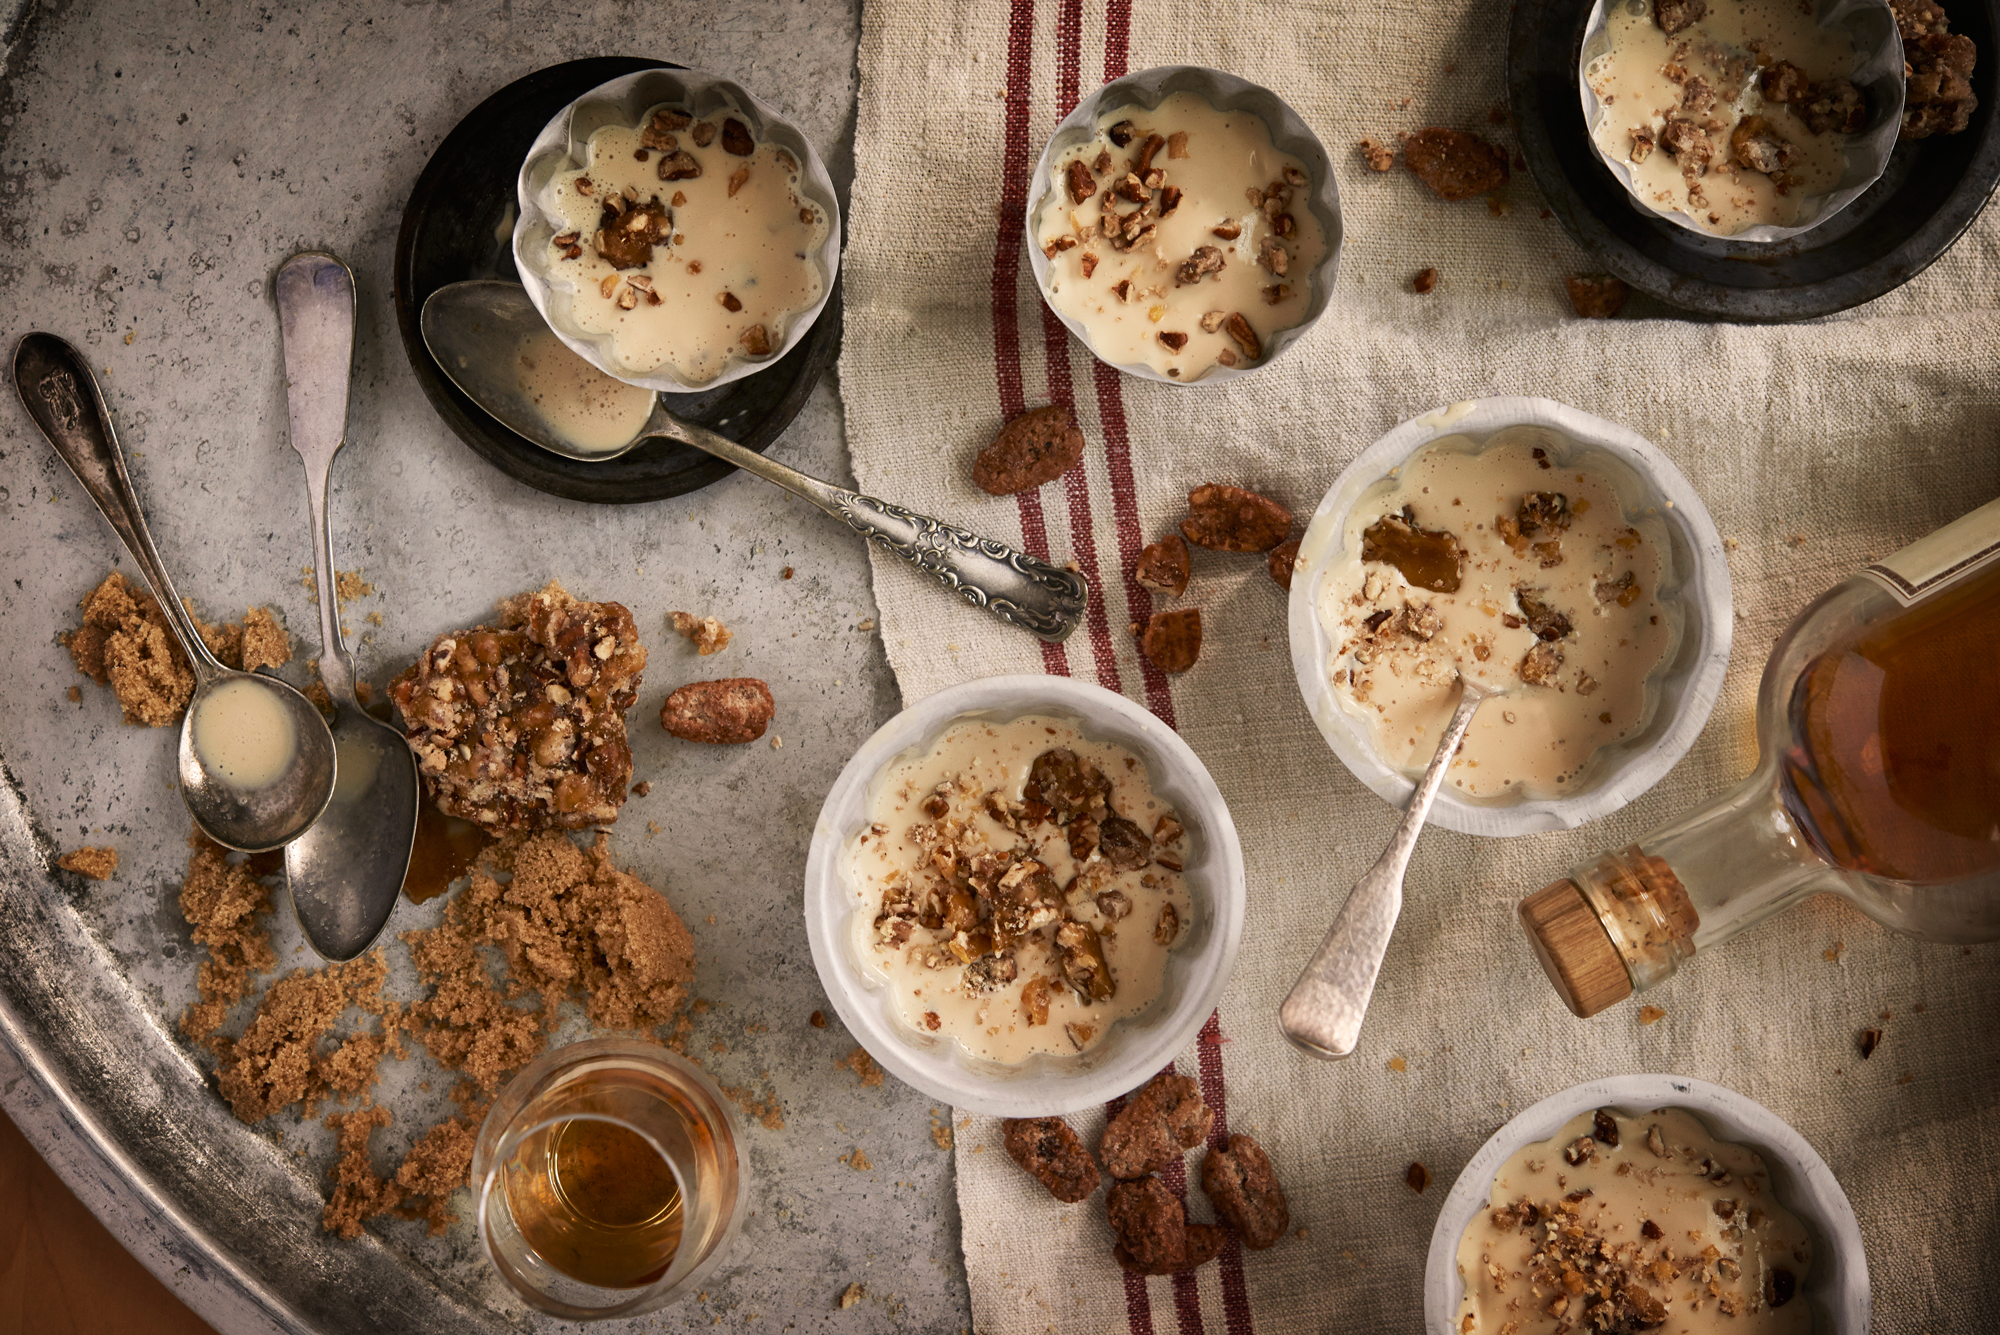 maple bourbon ice cream on table